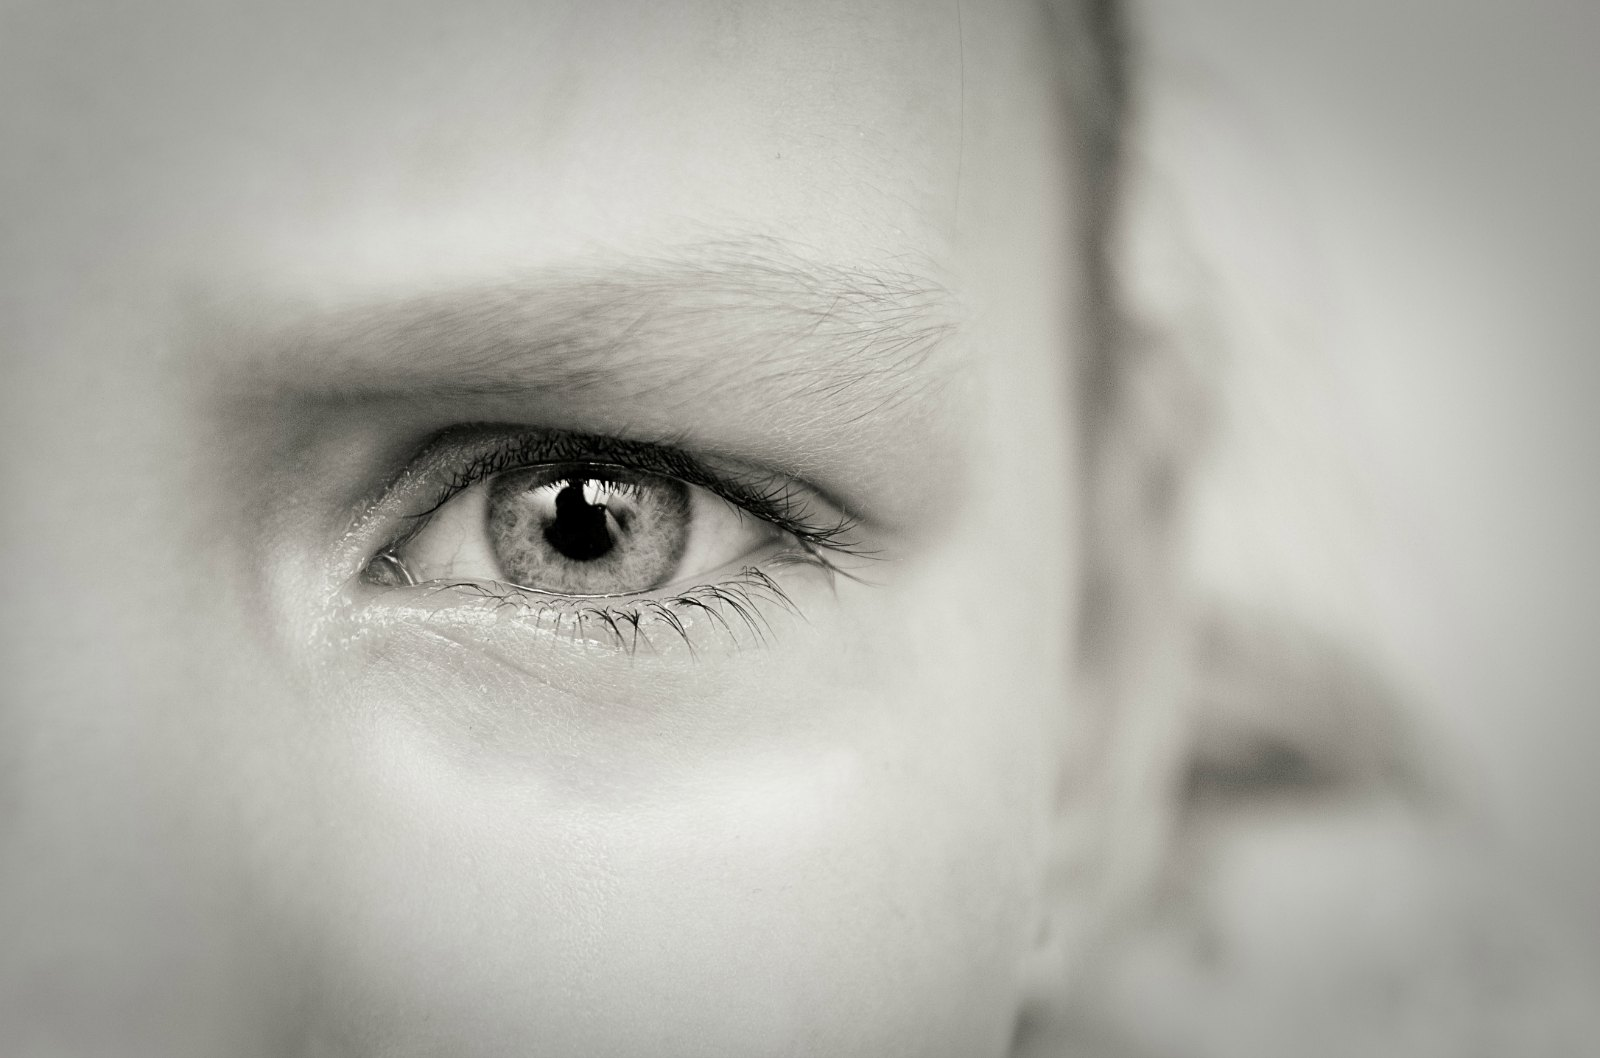 Inventors Aim to Increase Availability of Eye Screening for Diabetics